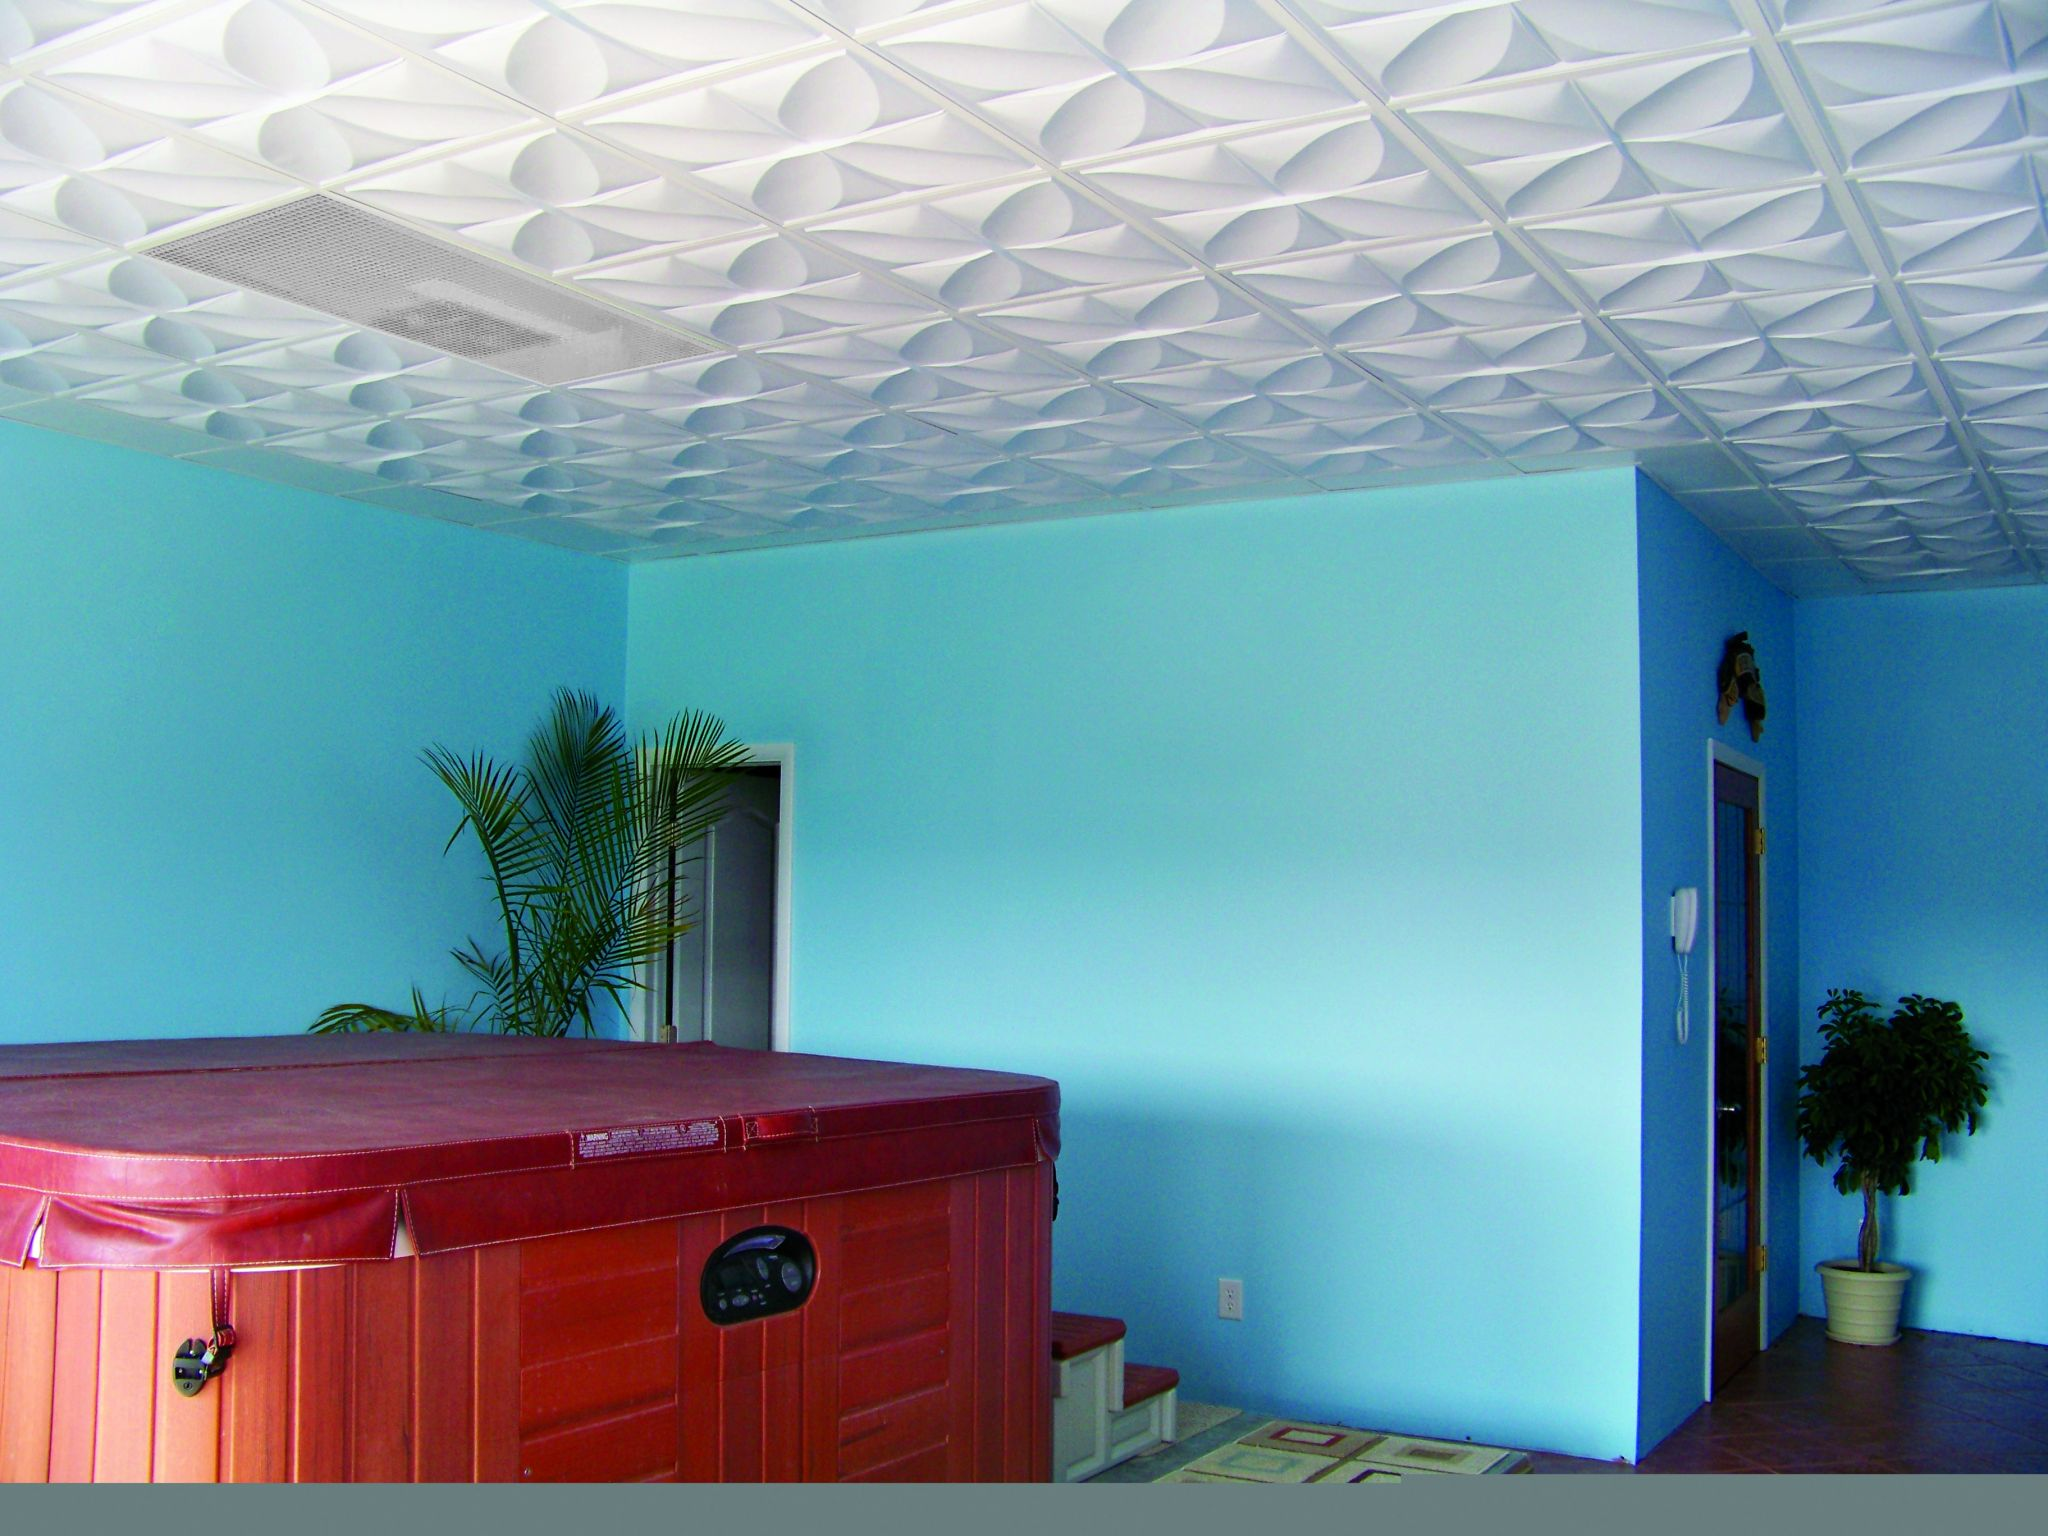 Therrmed Ceiling Tiles And Panels Can Be Used In Humid Areas Such As Above The Hot